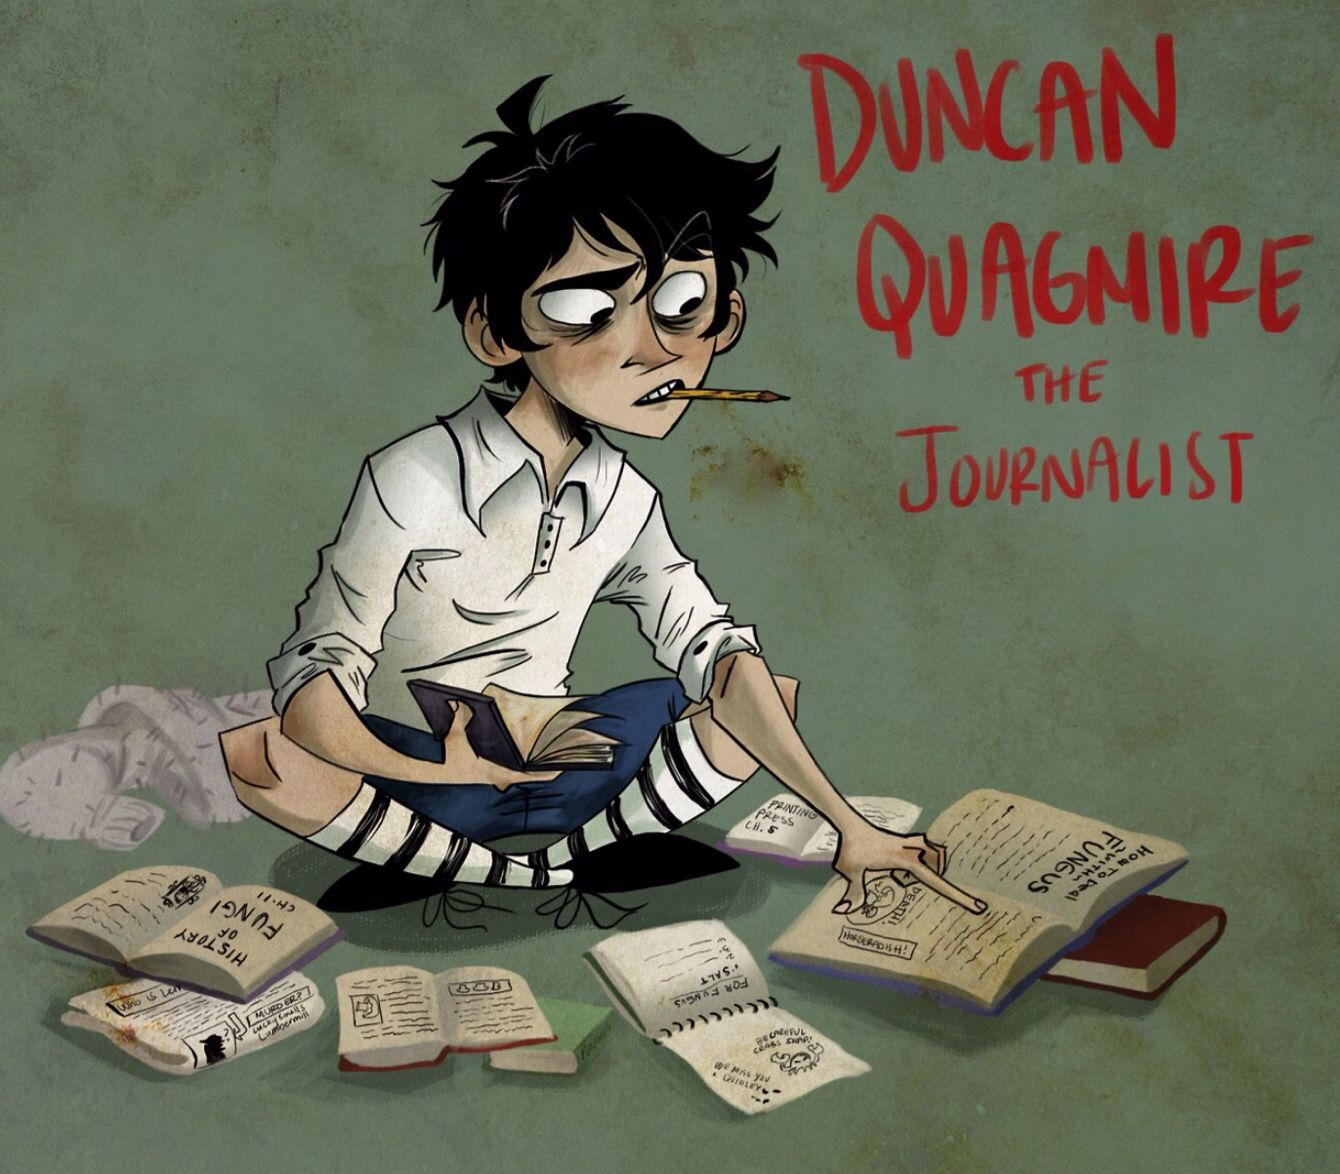 Duncan Quagmire A Series Of Unfortunate Events By Plasticnatur A Series Of Unfortunate Events Netflix A Series Of Unfortunate Events Unfortunate Events Books